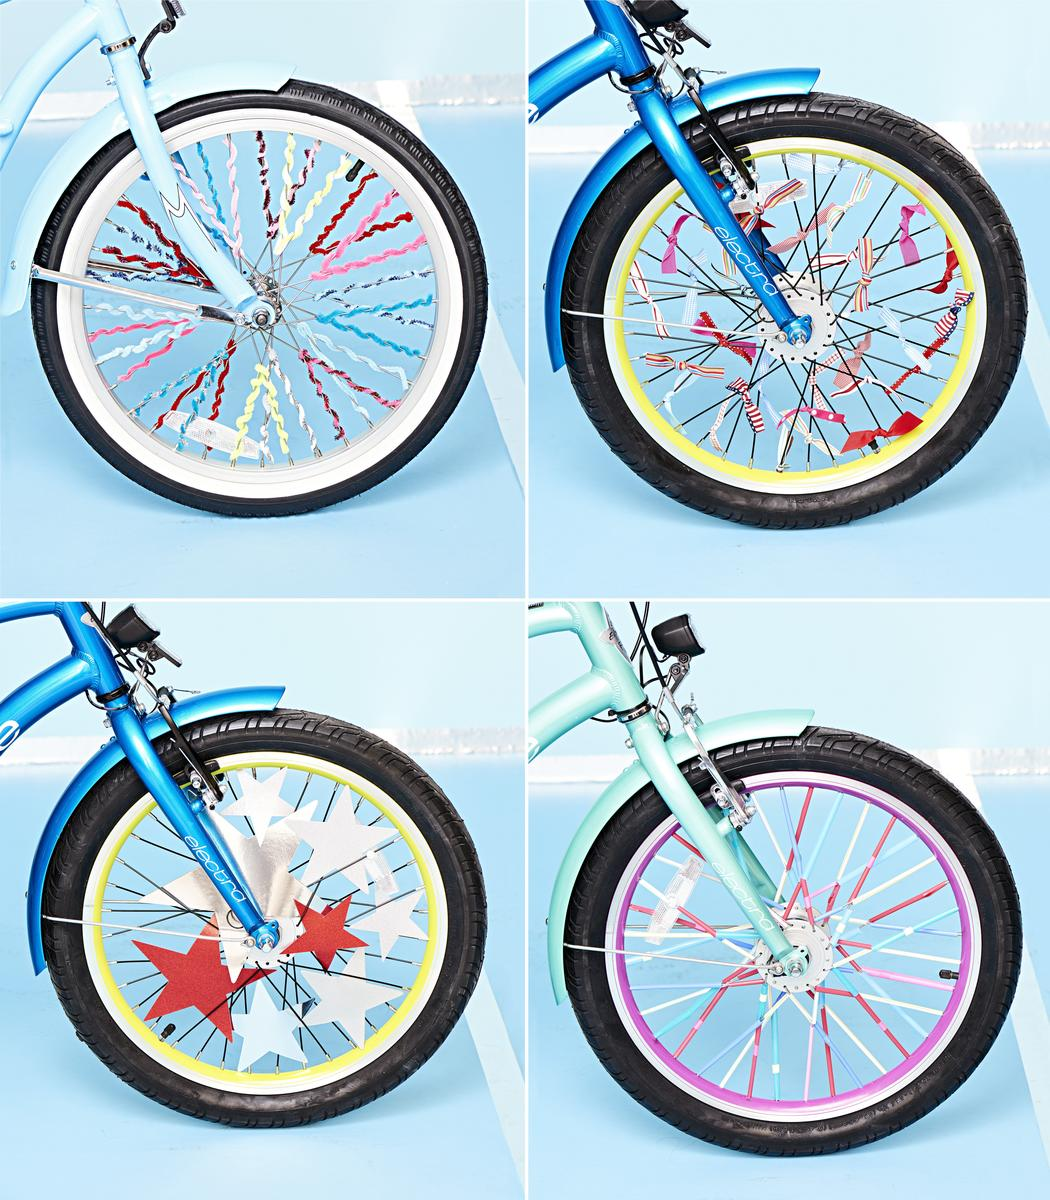 Hot Wheels Bike Decor